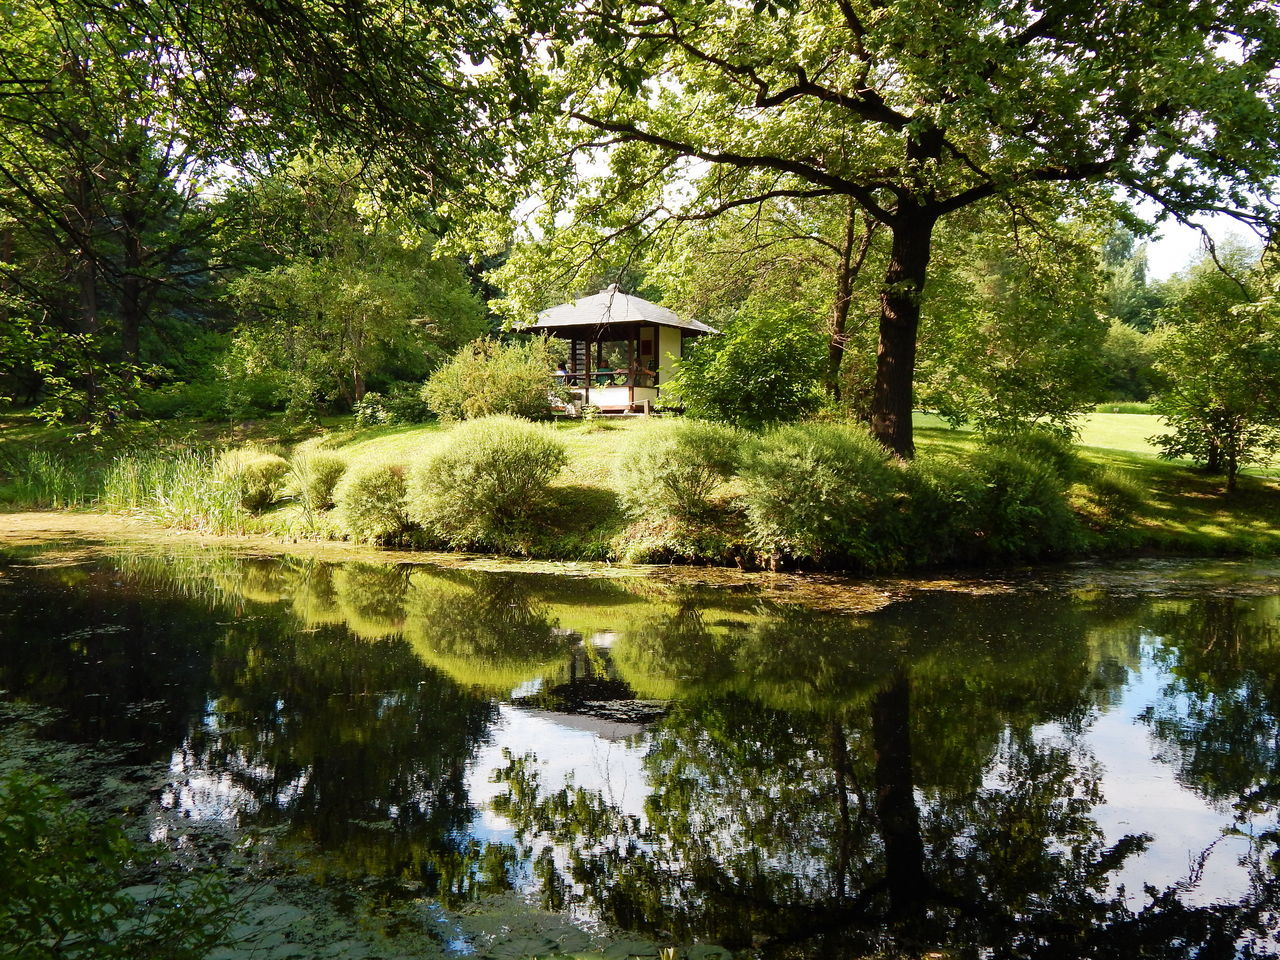 Japanese Garden in summer. Architecture Beauty In Nature Built Structure Day Green Color Growth Japanese Garden Lake Nature No People Outdoors Park Pavillion Pergola Pond Reflection Reflection Lake Scenics Sky Summertime Tranquil Scene Tranquility Tree Water Waterfront